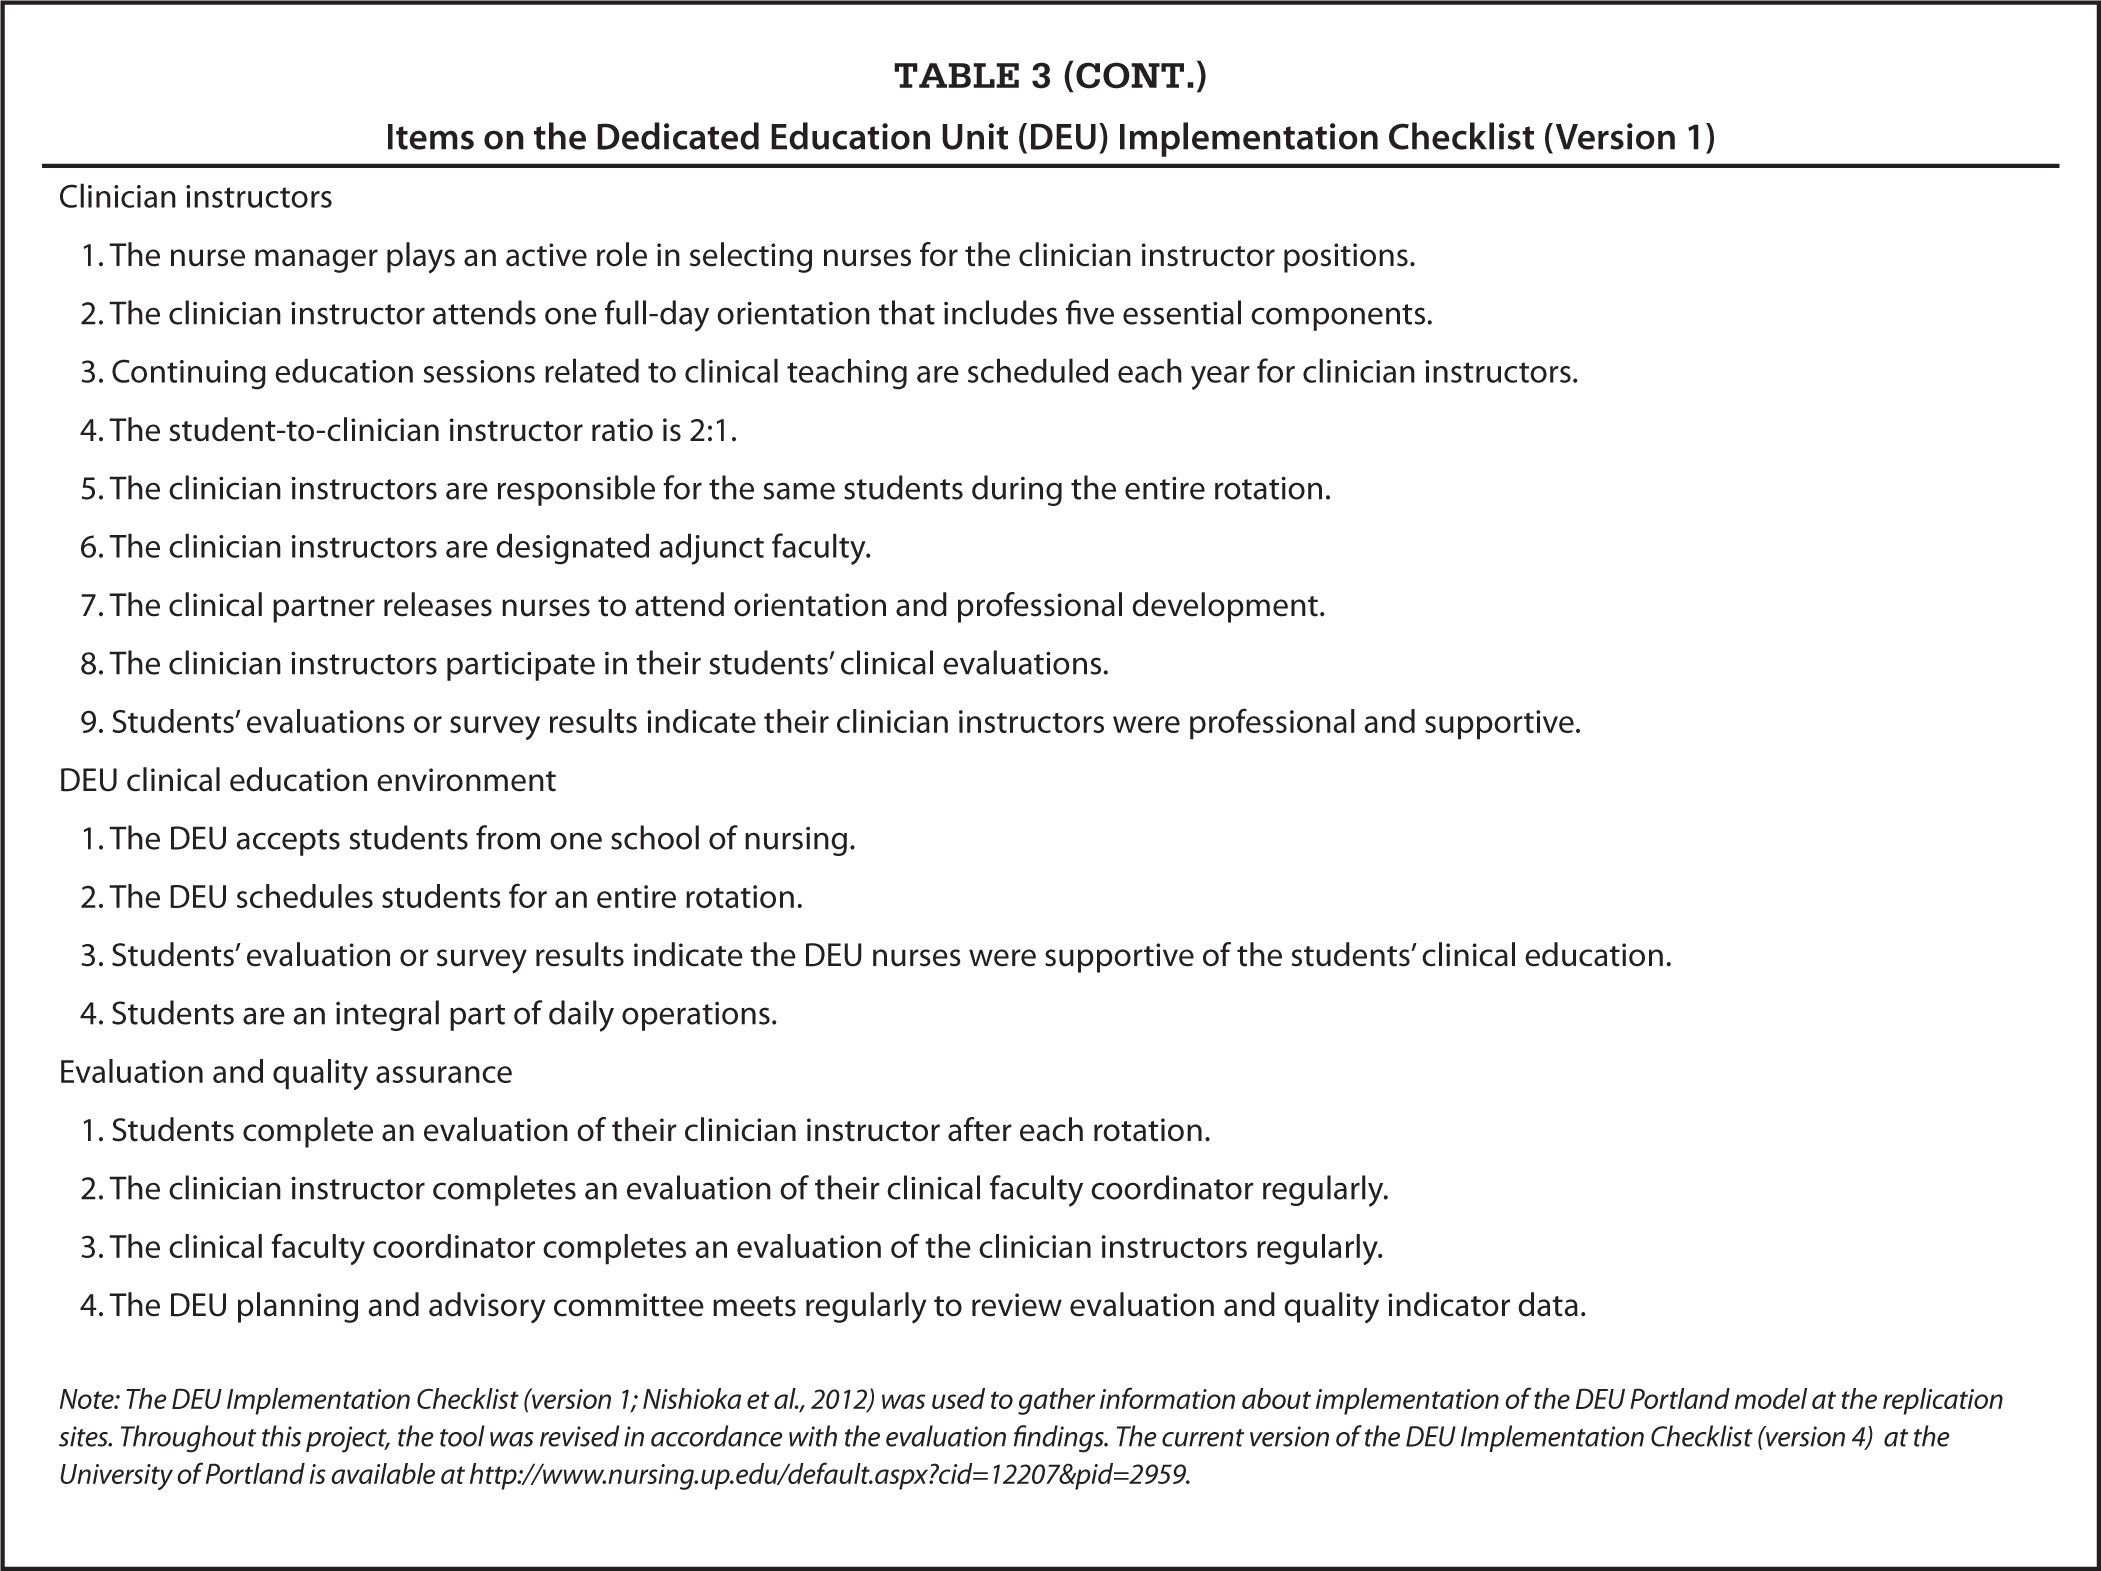 Items on the Dedicated Education Unit (DEU) Implementation Checklist (Version 1)